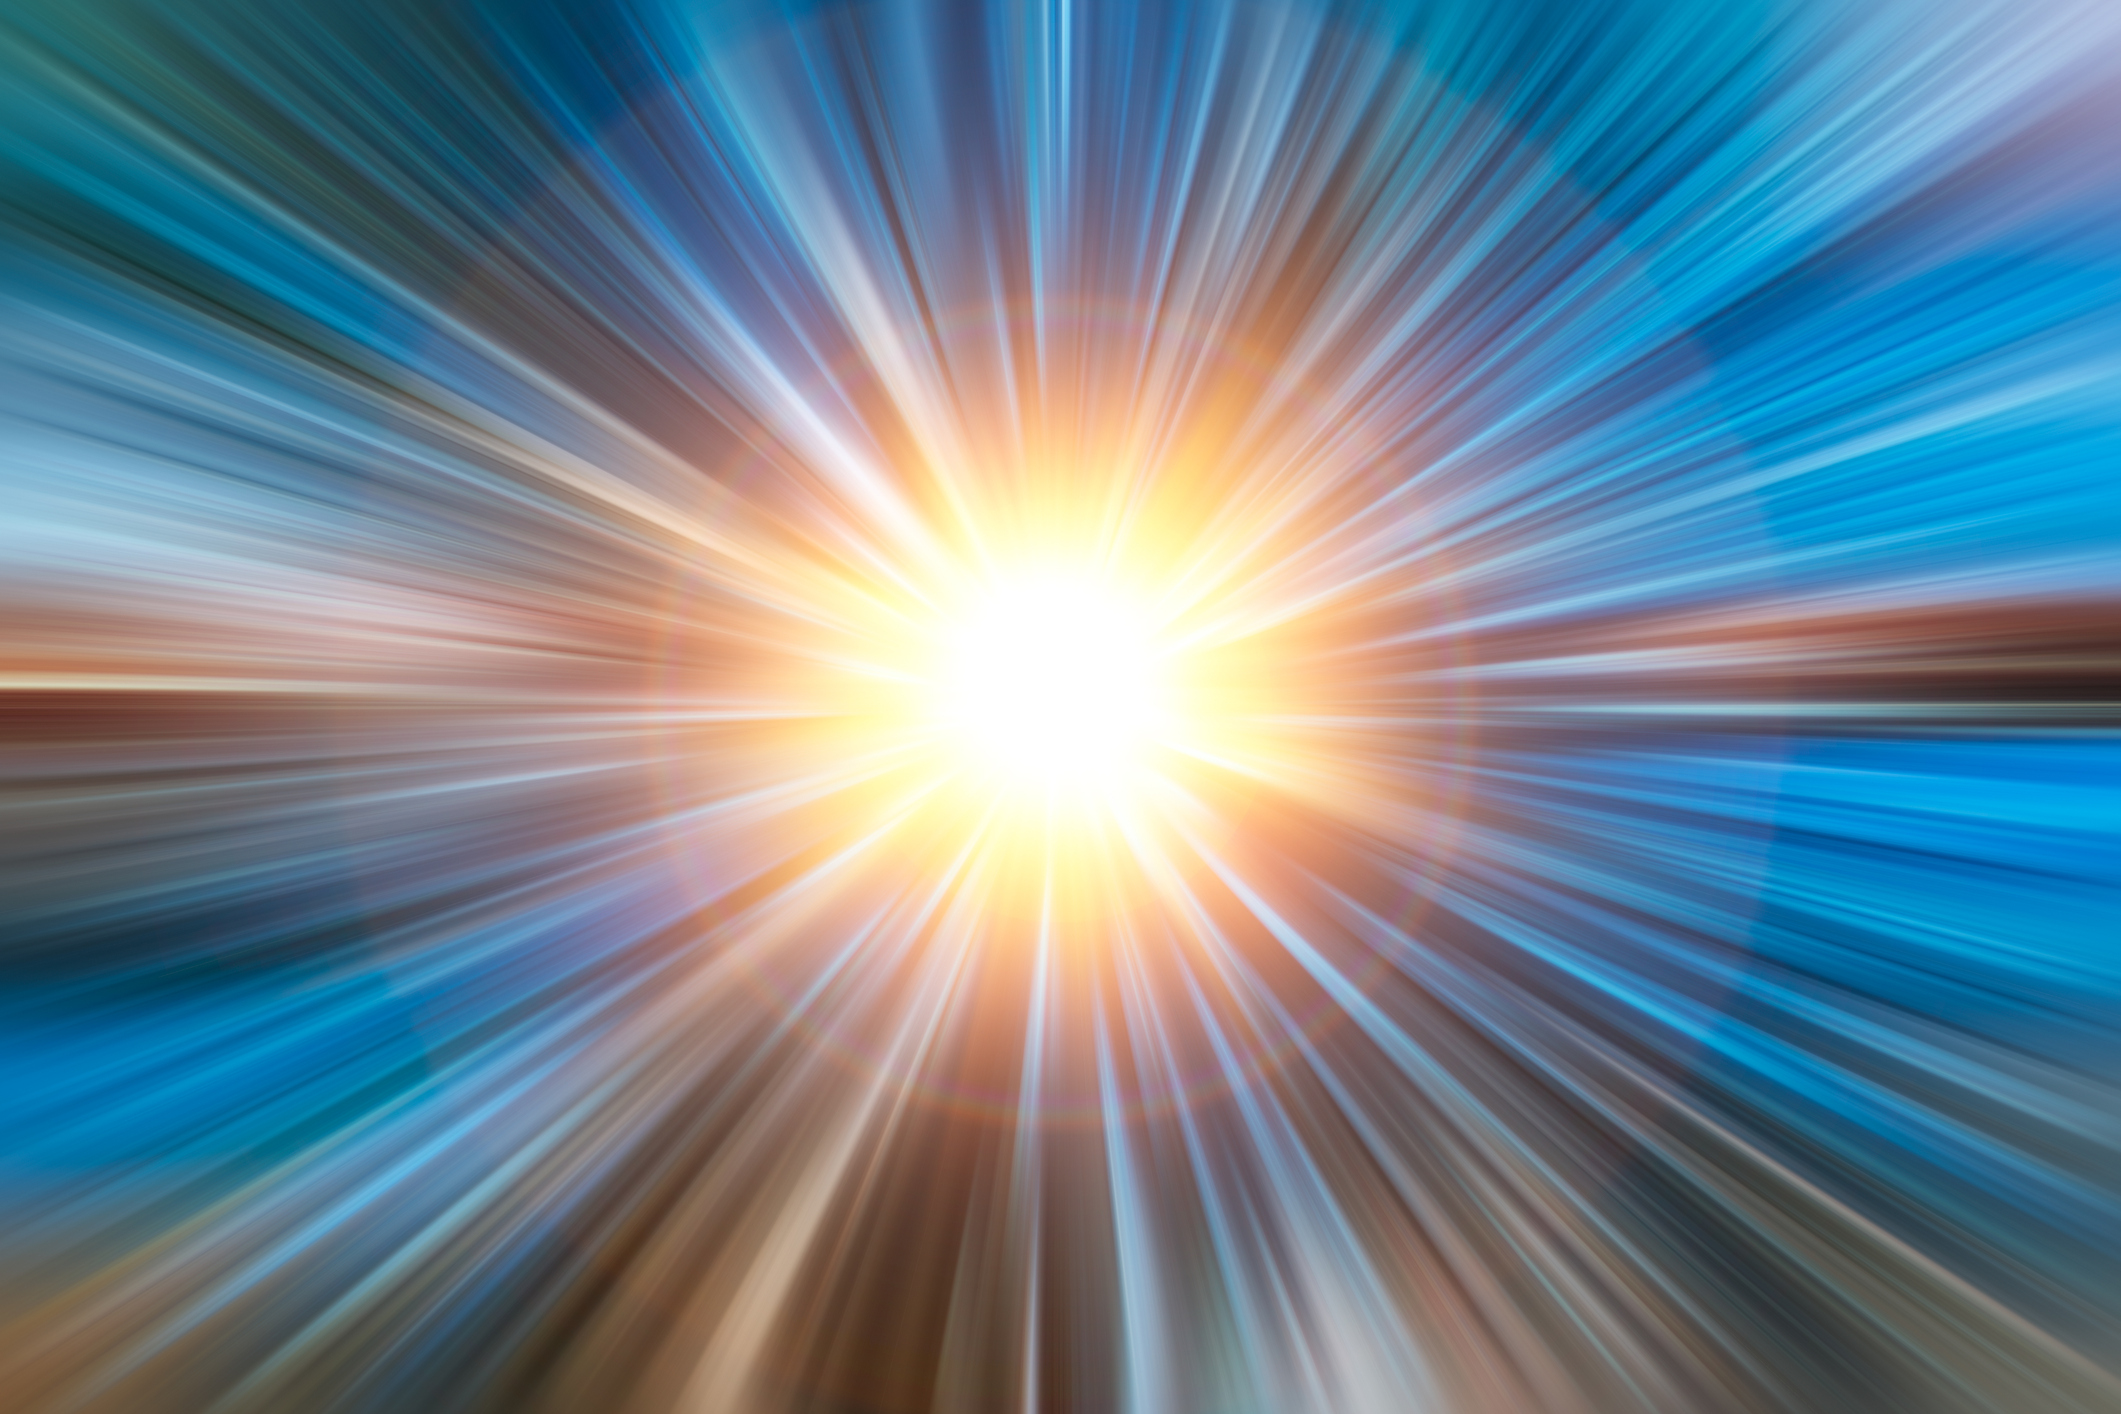 What would you see if you could travel at the speed of light?